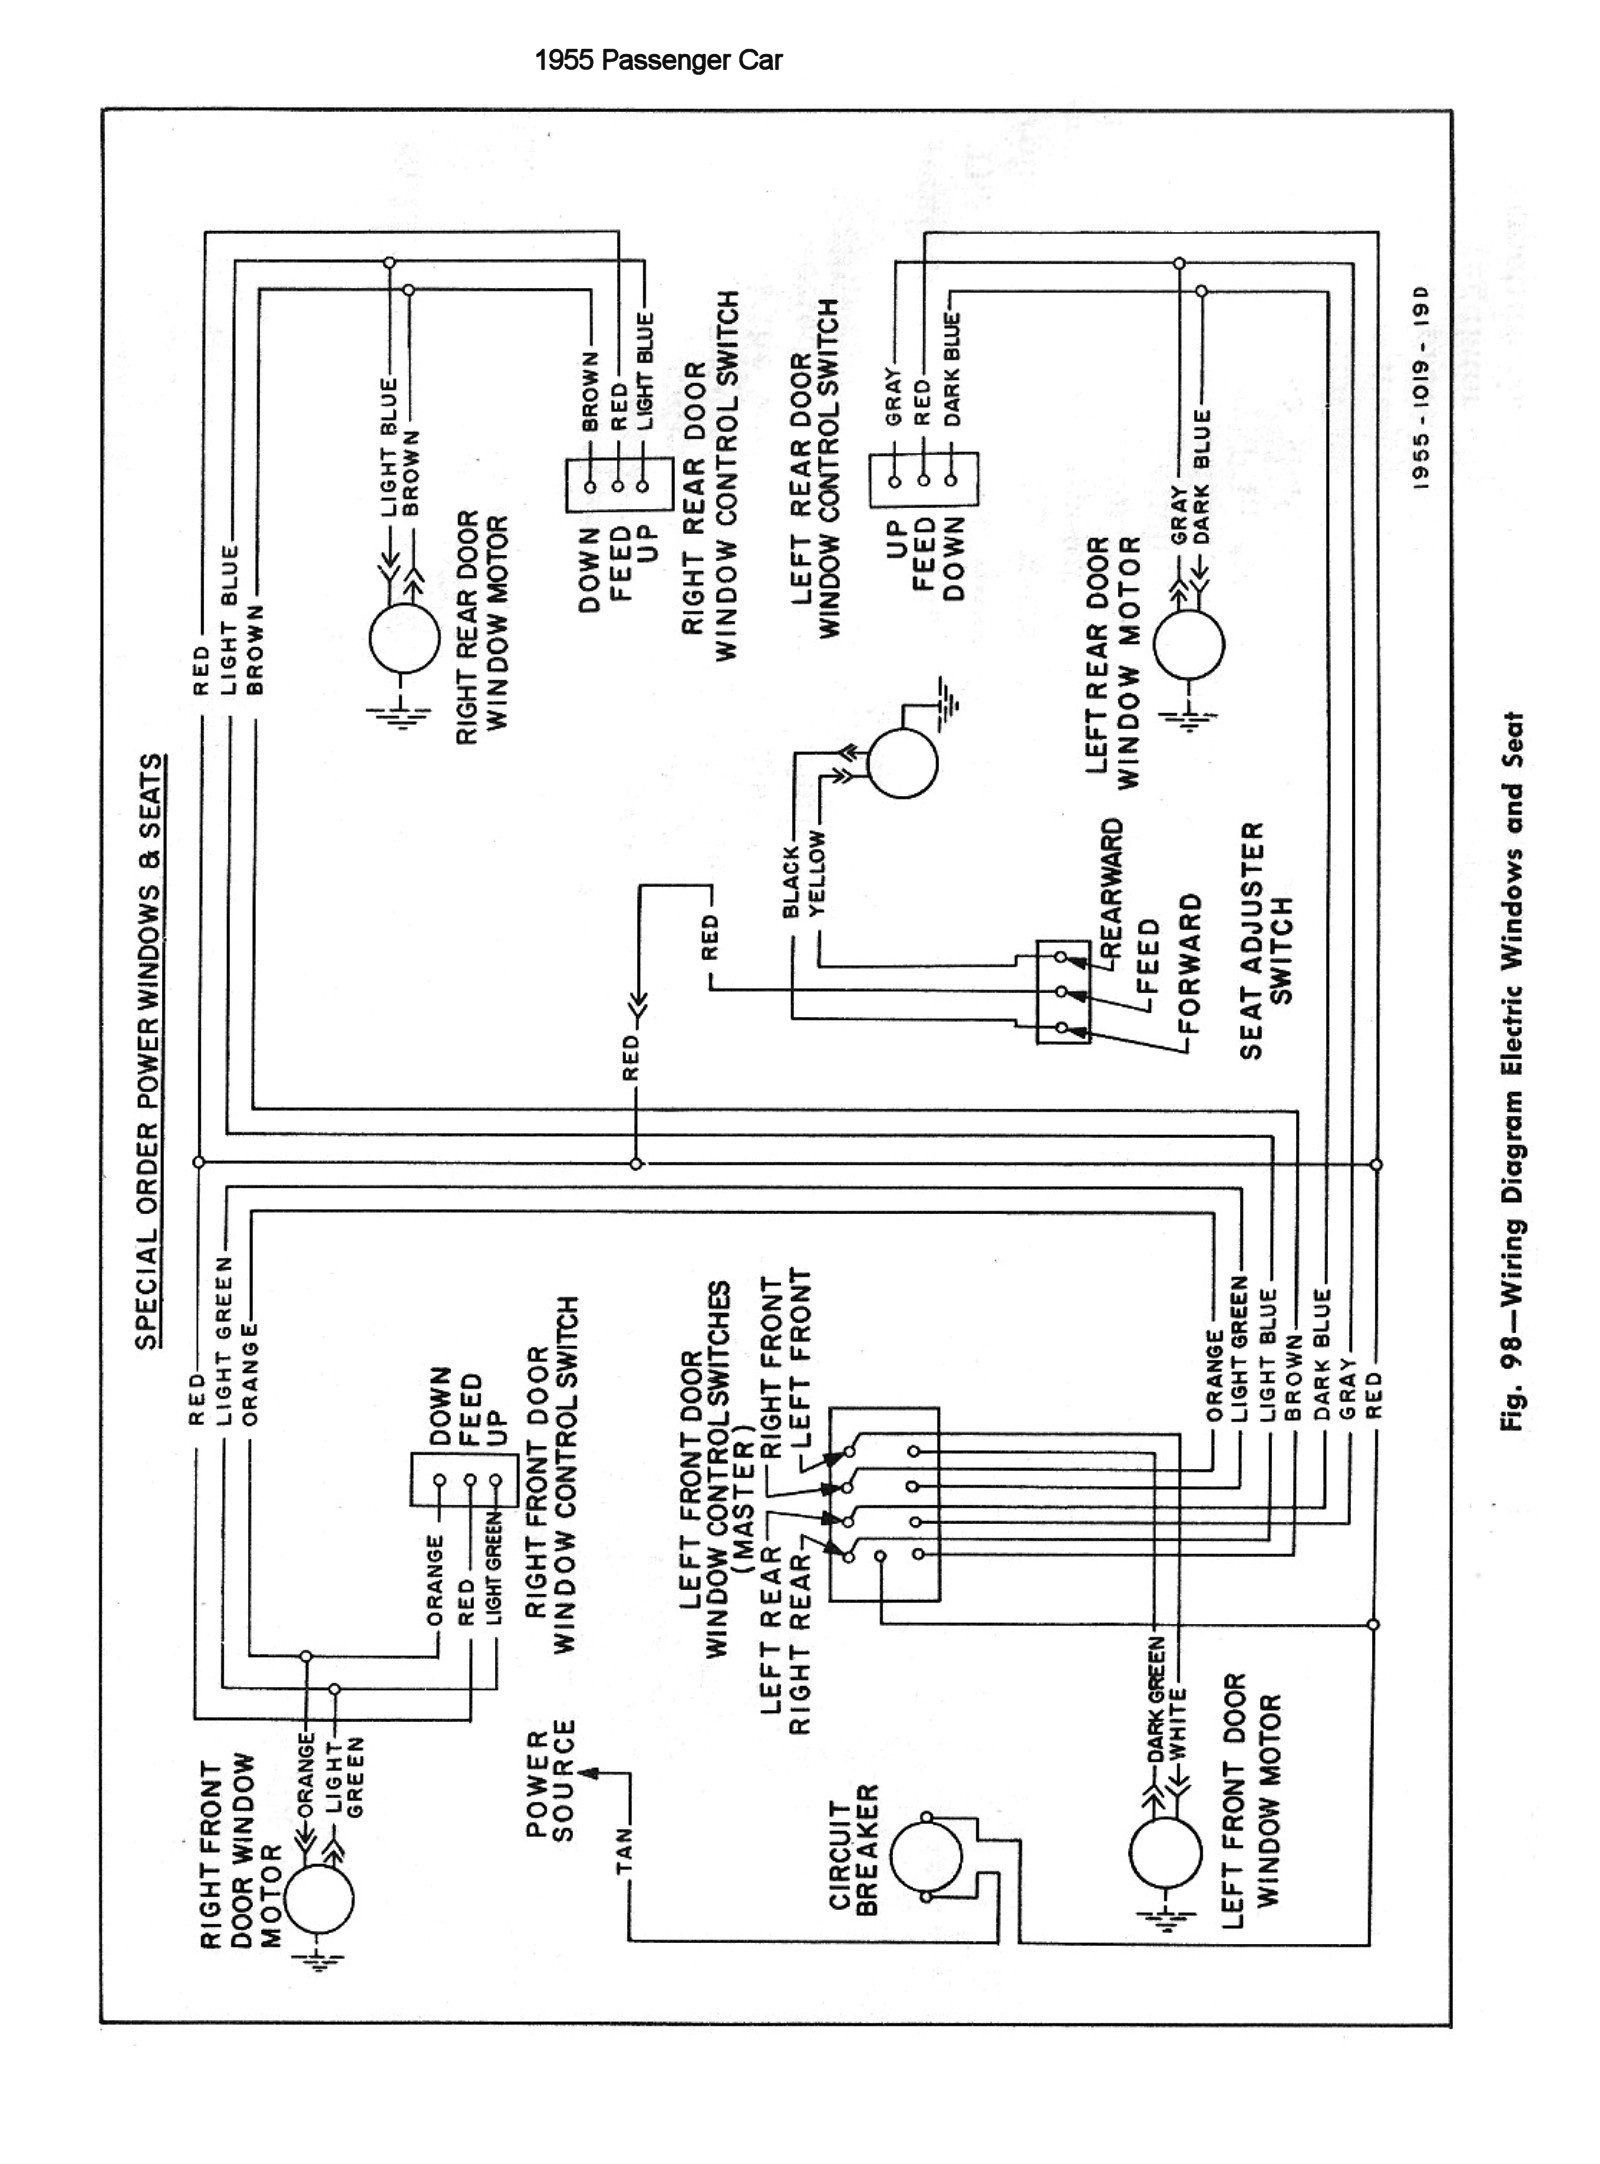 medium resolution of 1982 camaro turn signal wiring diagram wiring library rh 57 icse cloud09 org 1980 camaro wiring